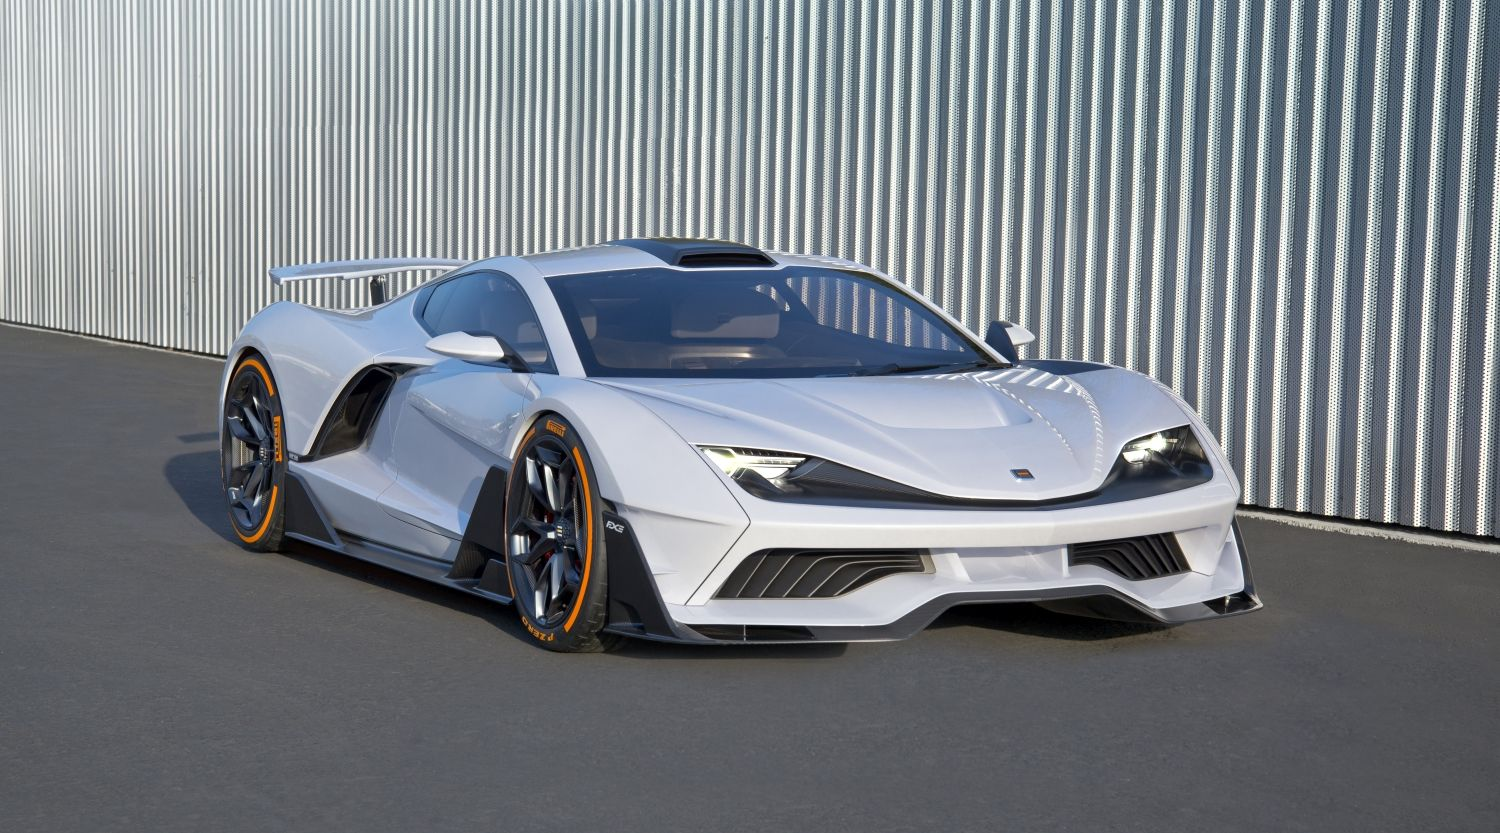 The Aria Fxe Is An American Made 1150 Hp Hybrid Supercar